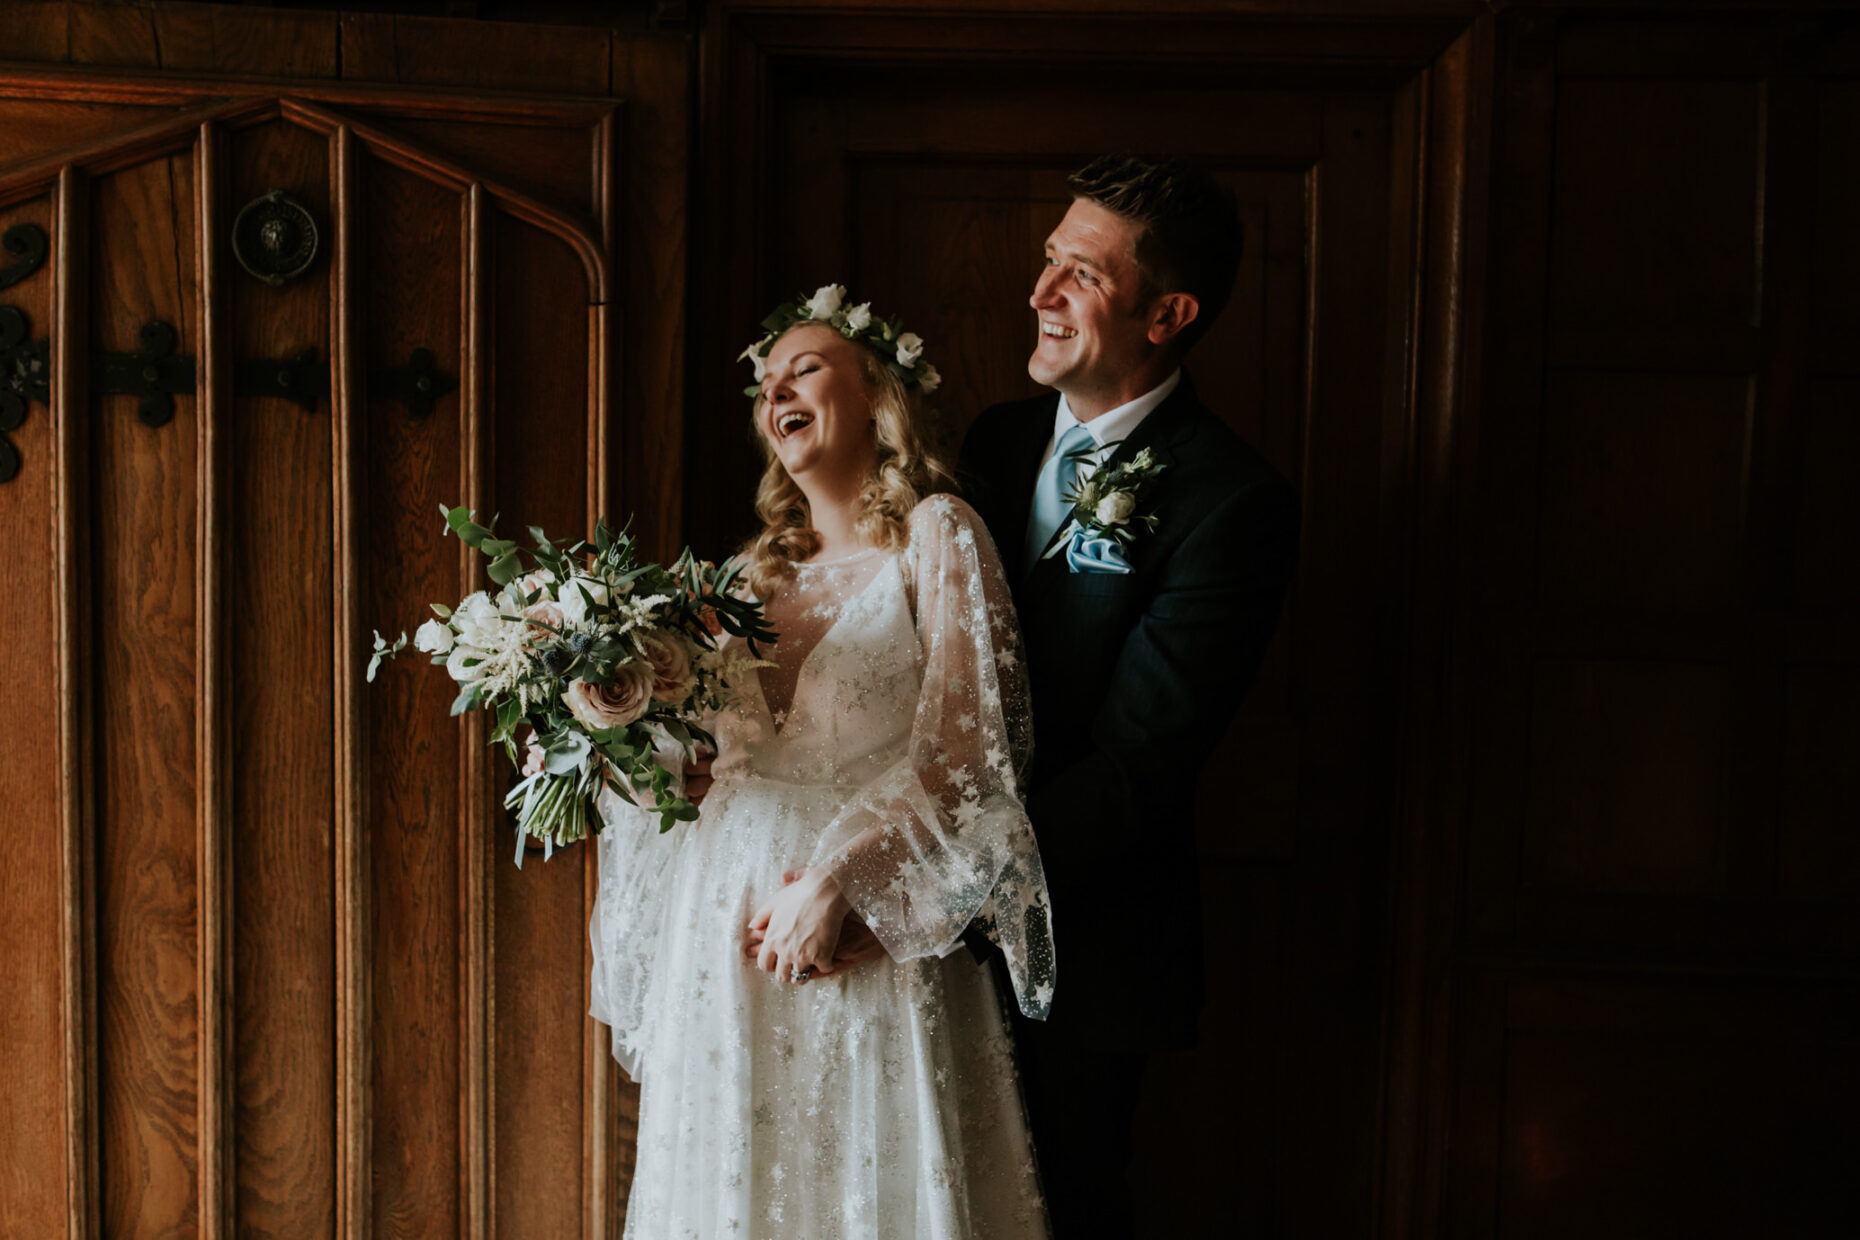 Bride and groom laughing as they cuddle in the door way with dark oak panelled walls as their backdrop